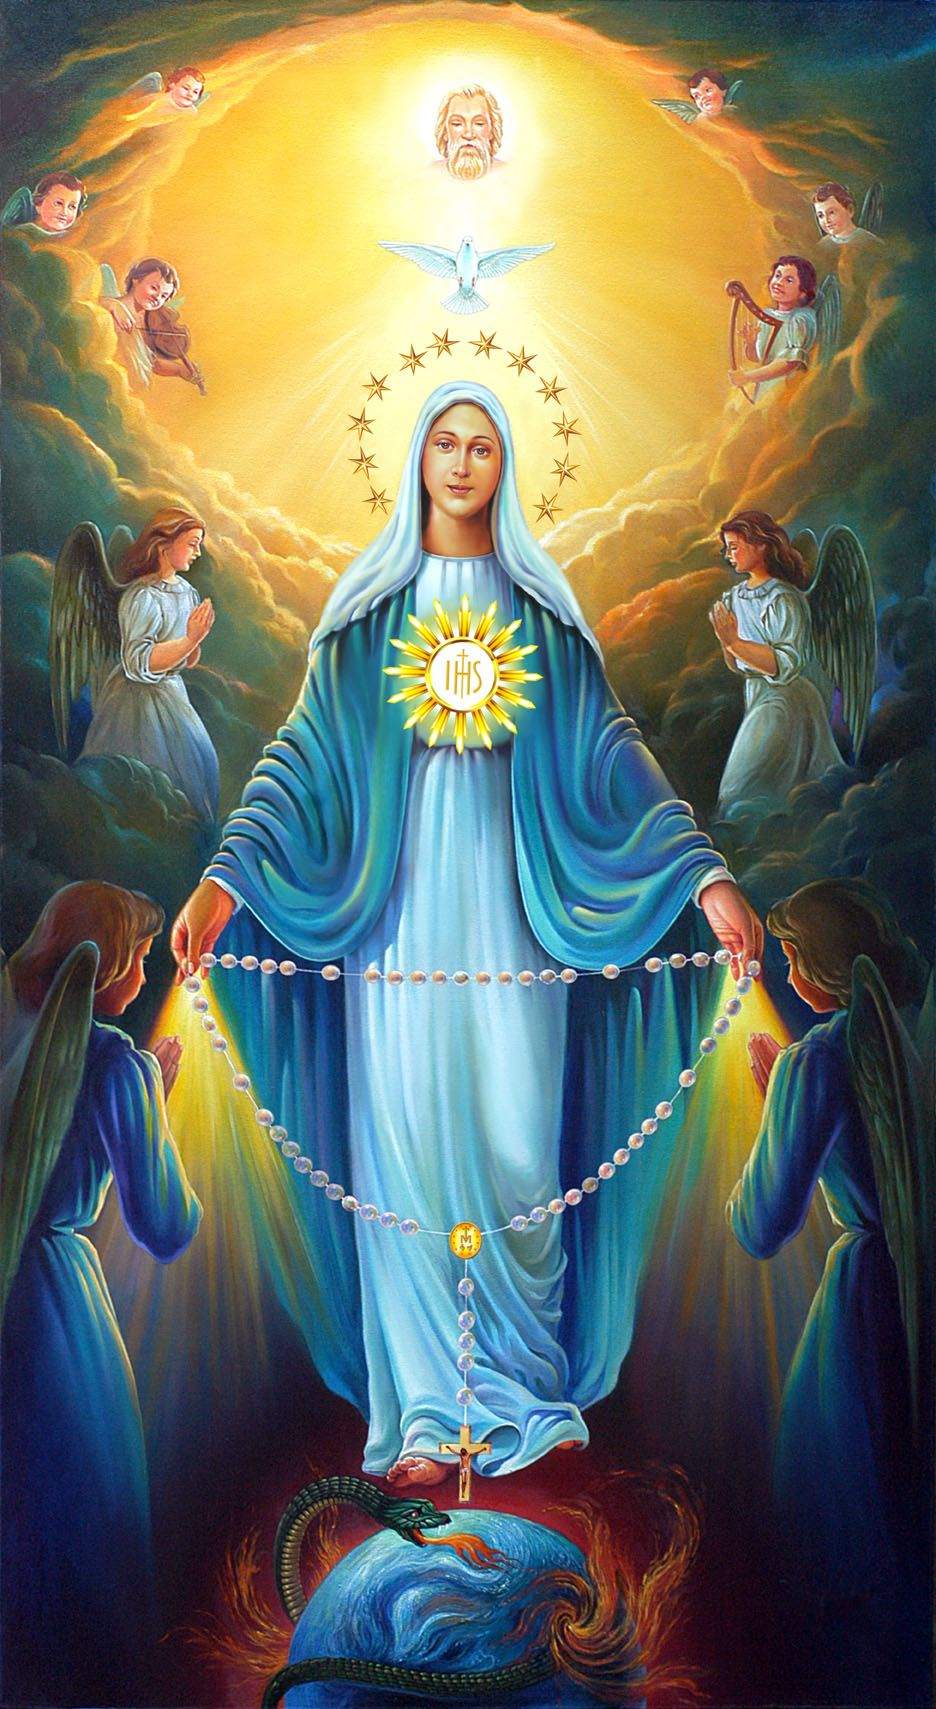 Holy Mass images.: Our Lady of the Holy Rosary Our lady of the rosary pictures